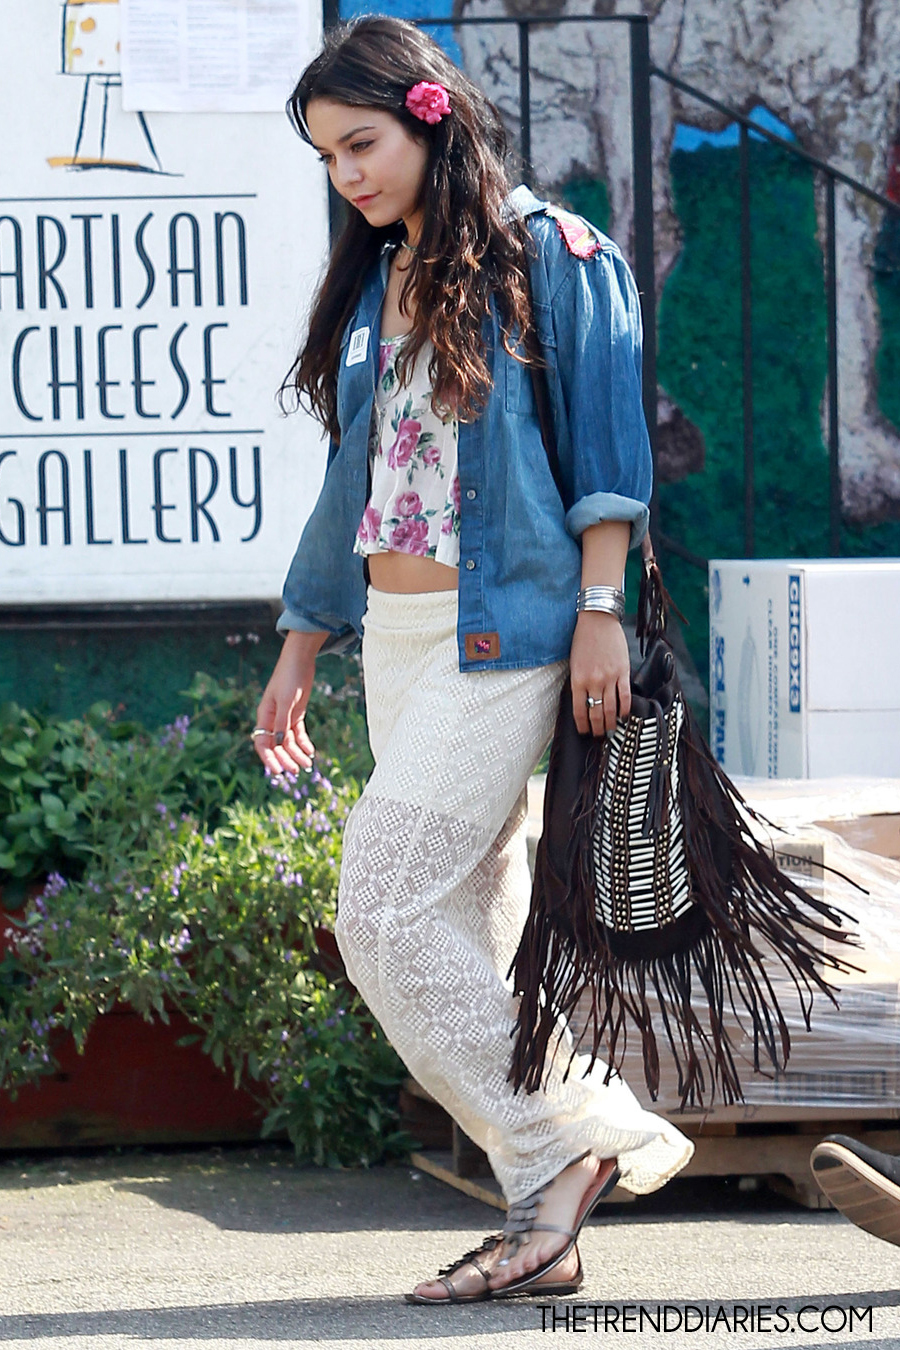 Vanessa Hudgens At The Artesian Cheese Gallery In Los Angeles California May 4 2012 The